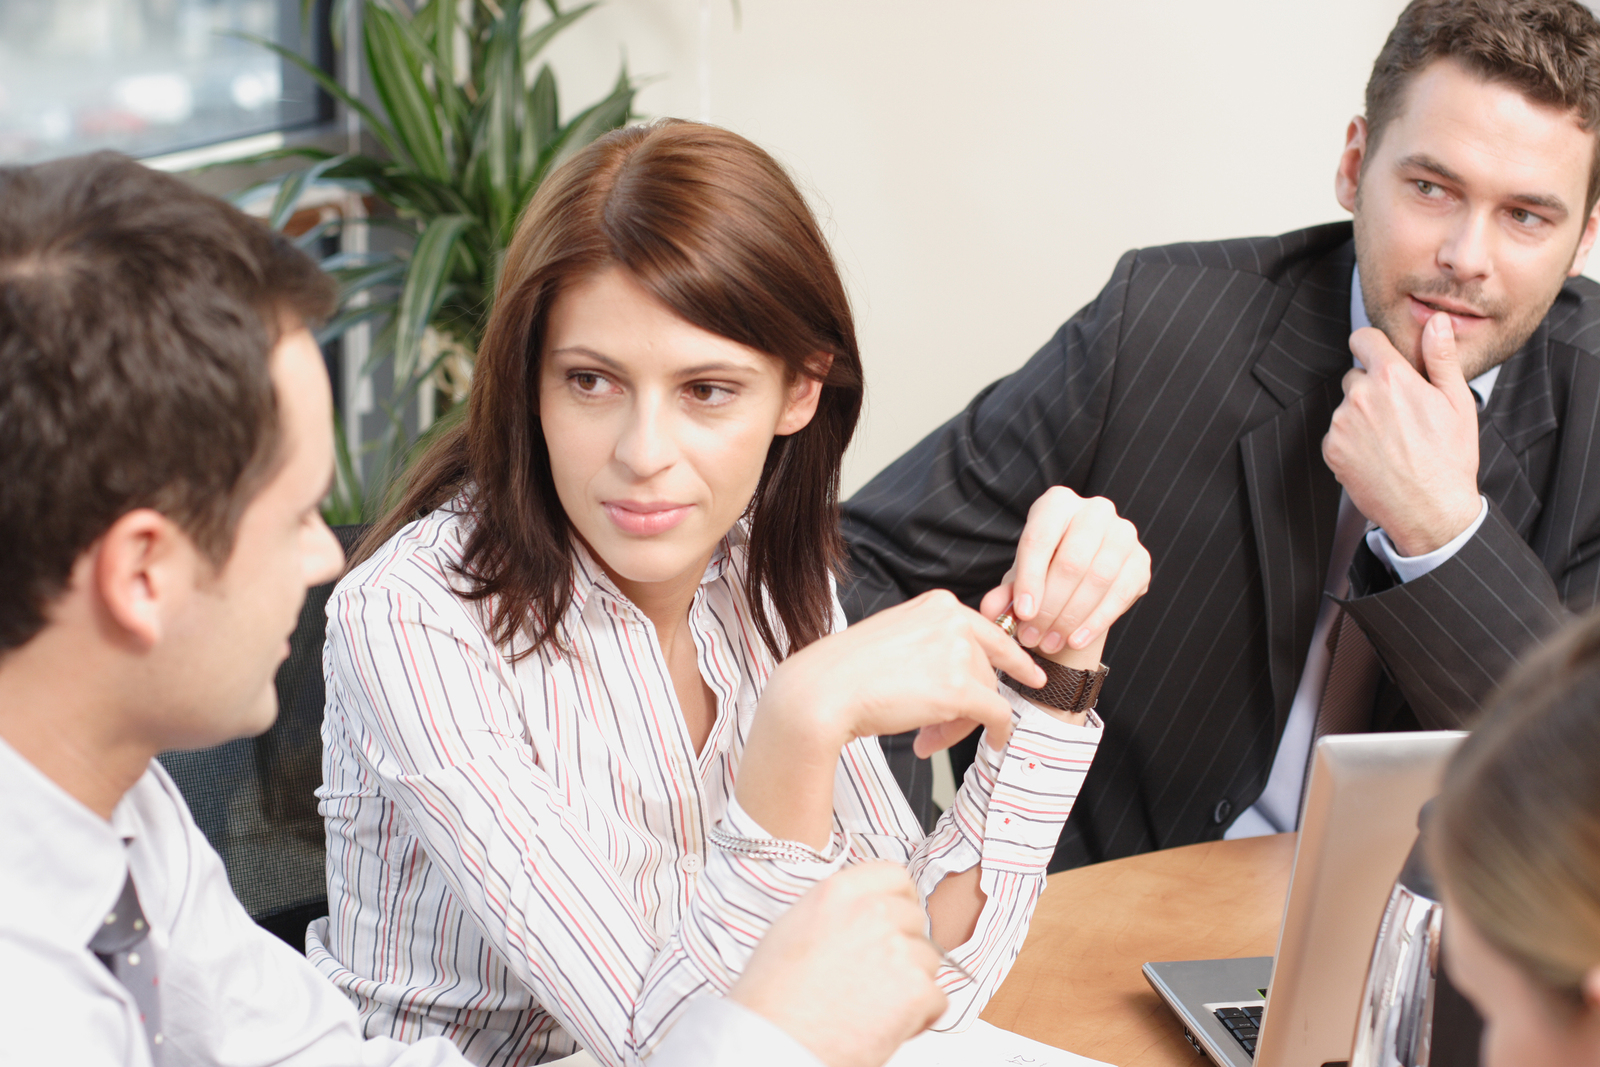 Young woman talks to colleagues at small business